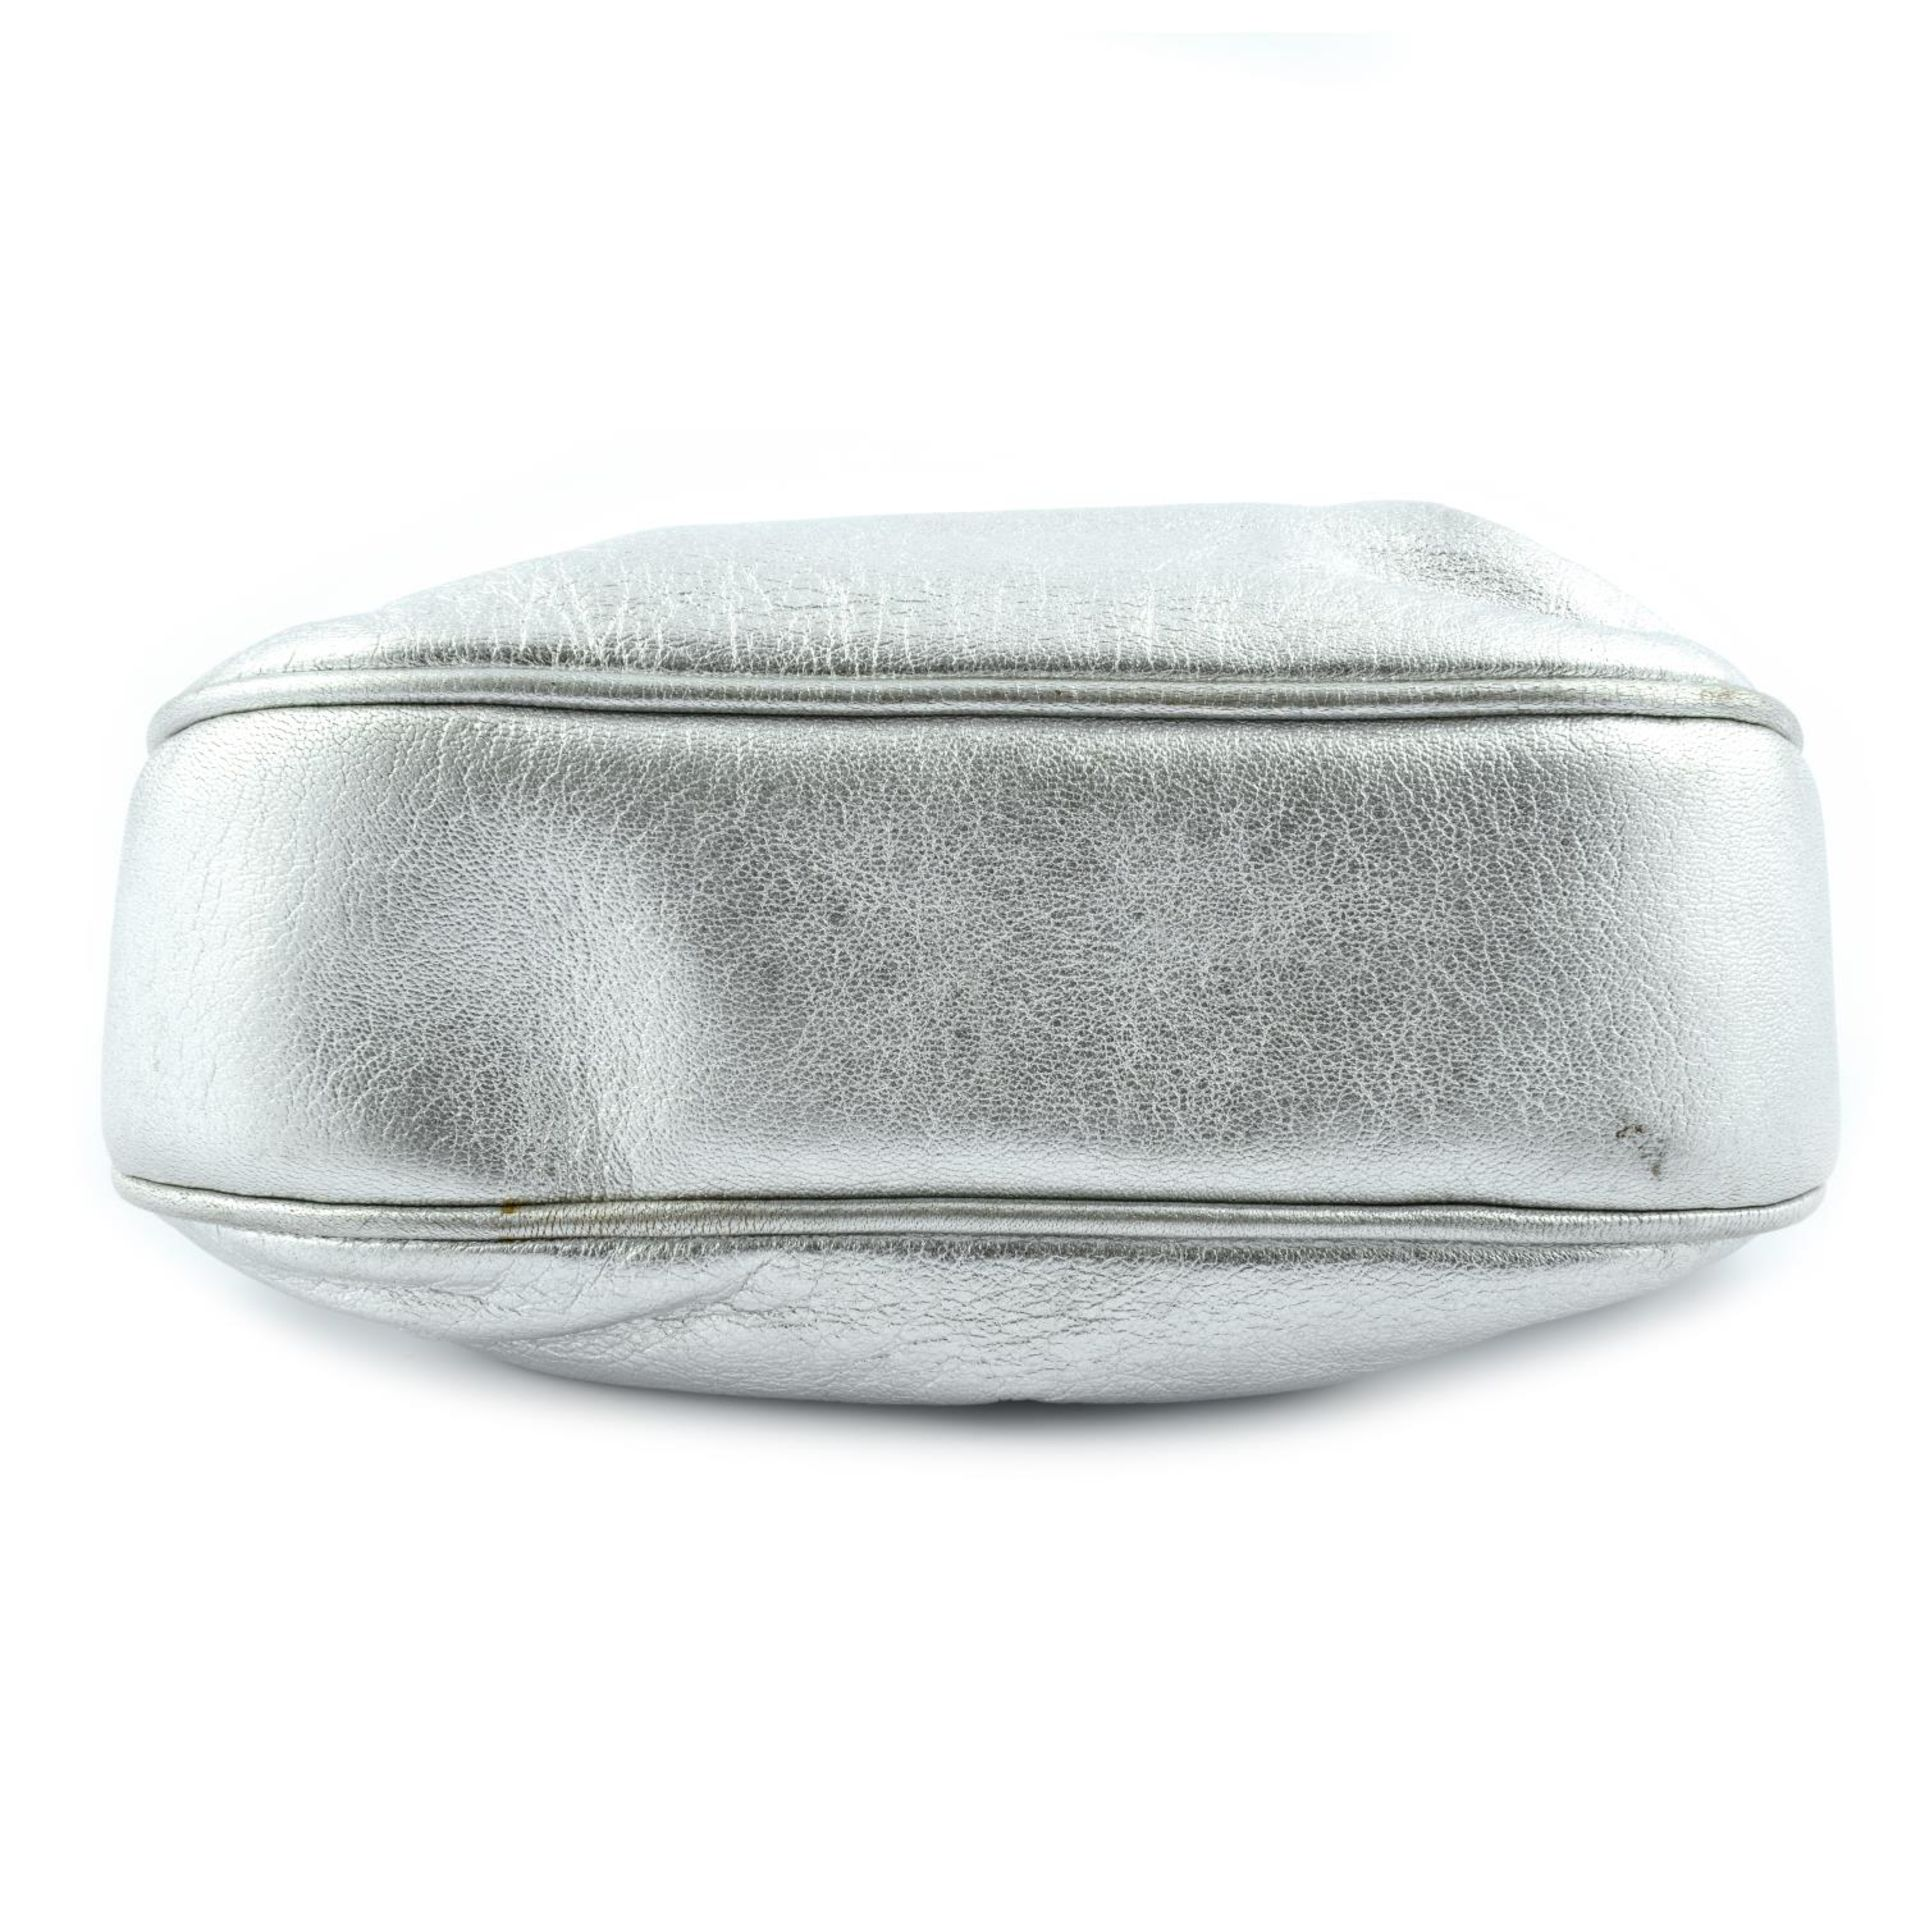 CHANEL - a vintage metallic kiss-lock clutch with chain. - Image 6 of 6